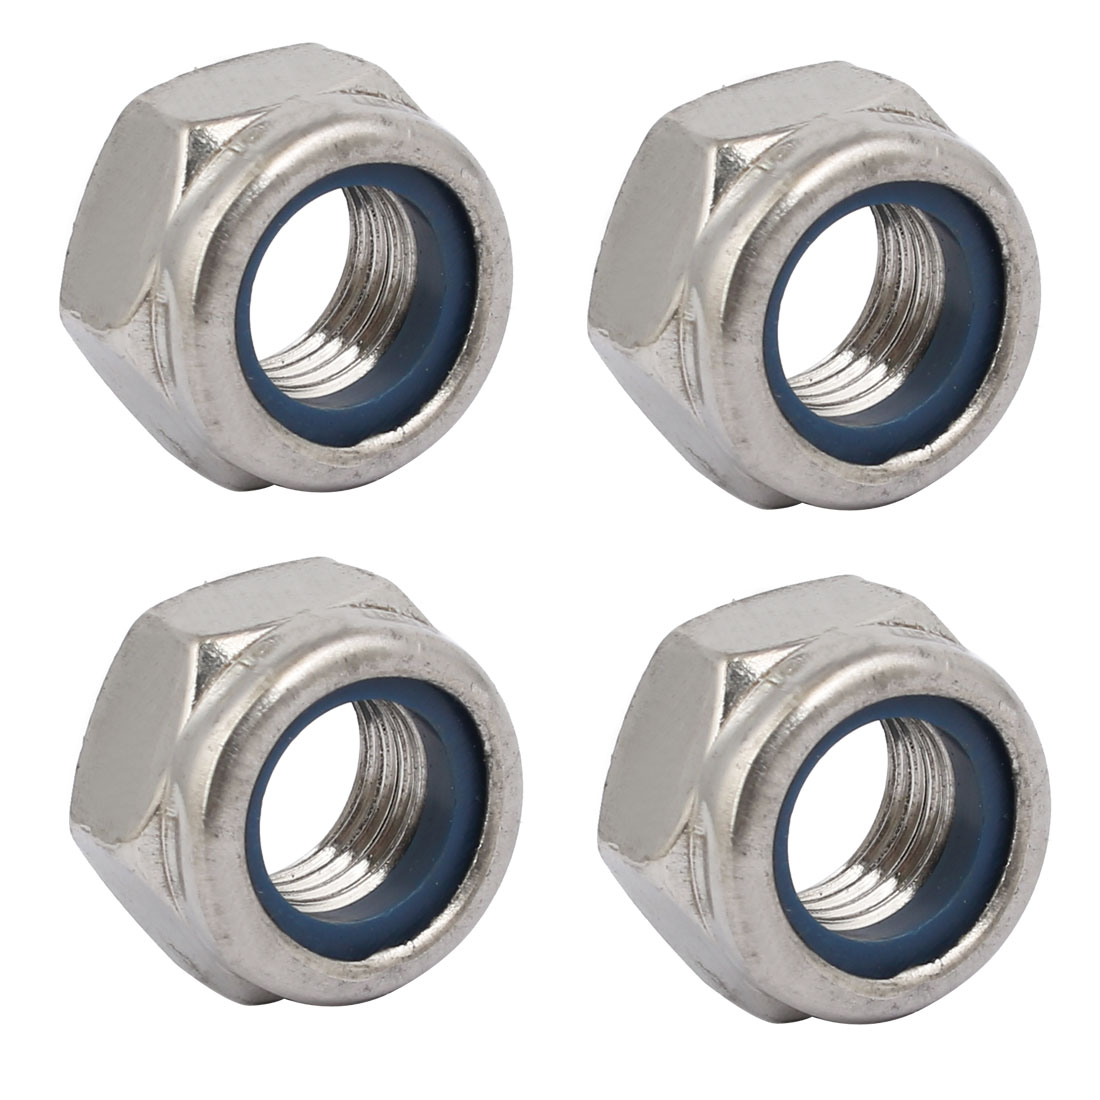 4pcs M12 x 1.5mm Pitch Metric Fine Thread 304 Stainless Steel Hex Lock Nuts